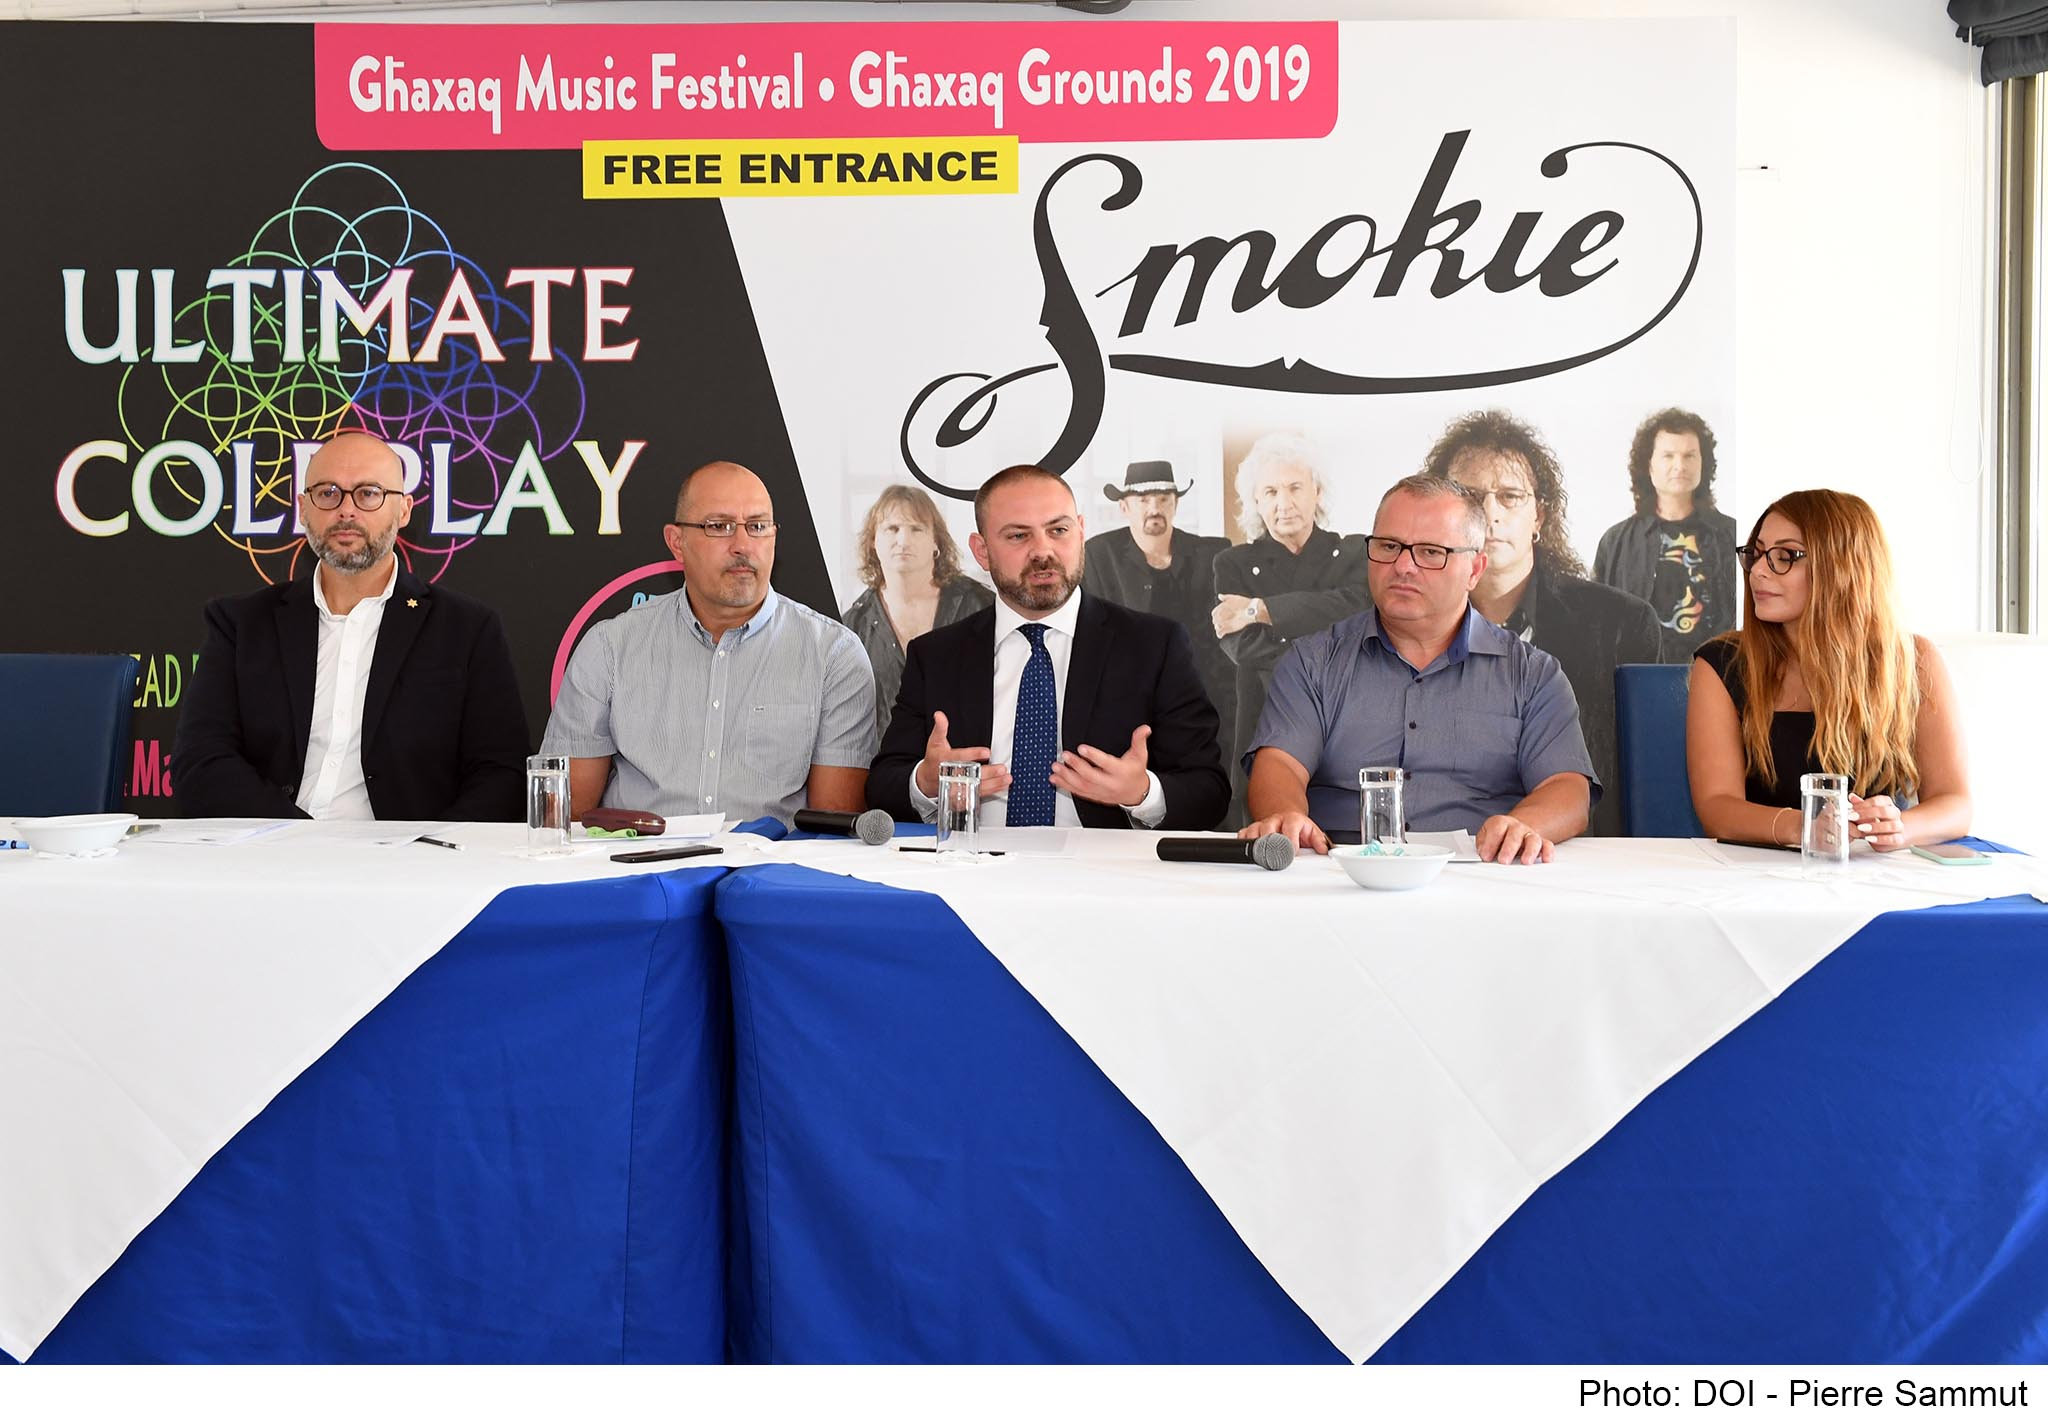 PRESS RELEASE BY THE MINISTRY FOR JUSTICE, CULTURE AND LOCAL GOVERNMENT: Għaxaq Music Festival commemorates 20th anniversary with thrilling music experience